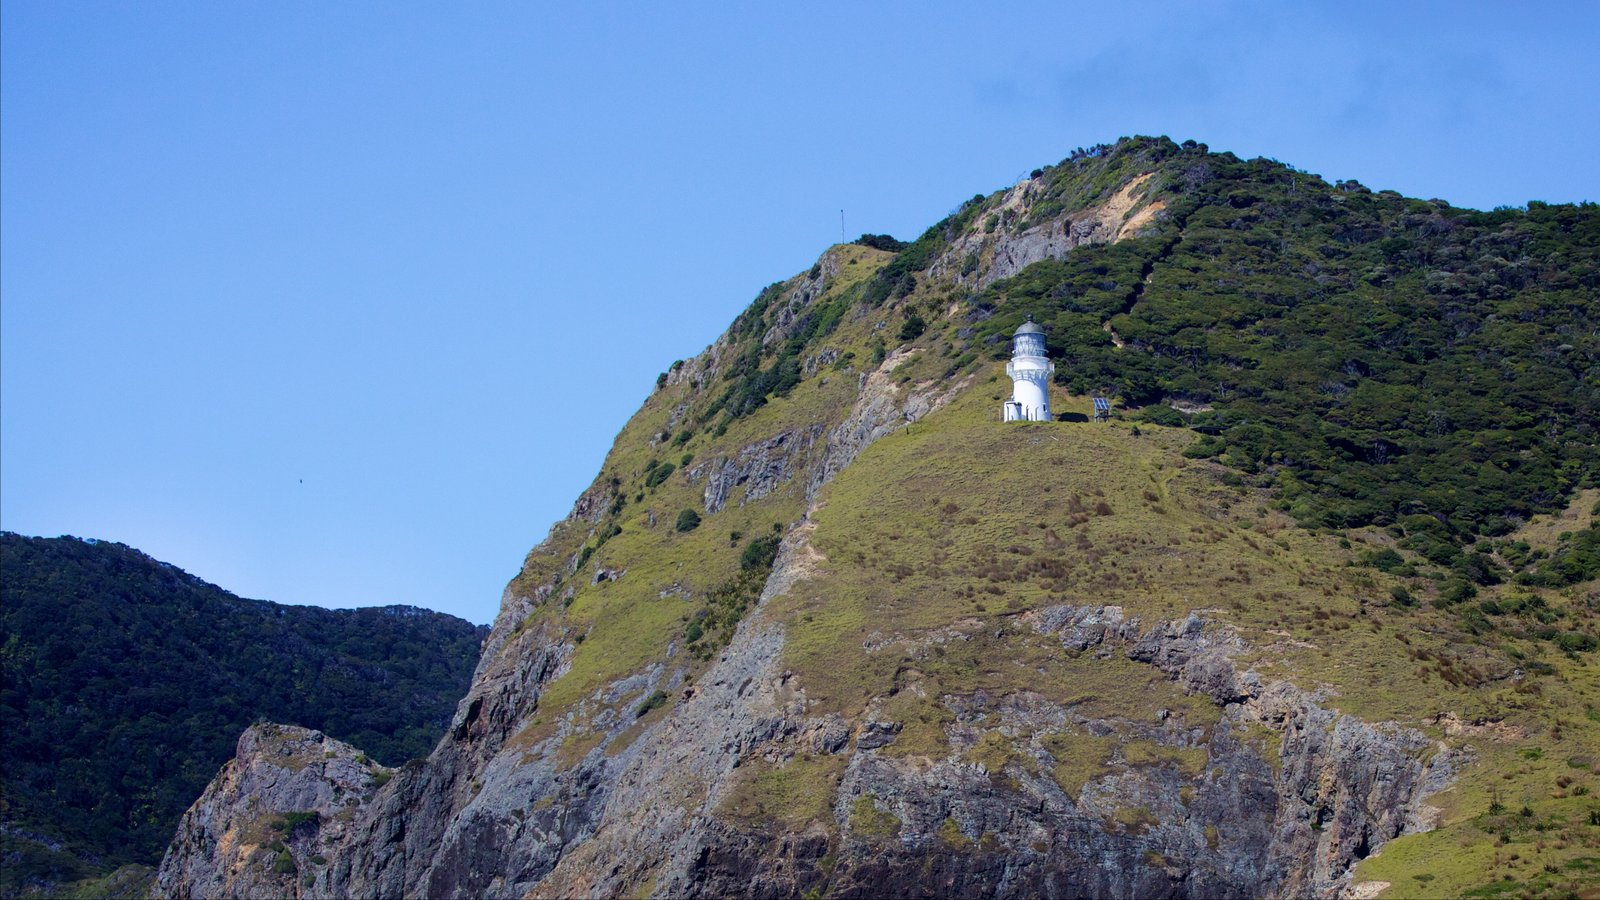 Cape Brett Lighthouse featuring a lighthouse and rocky coastline